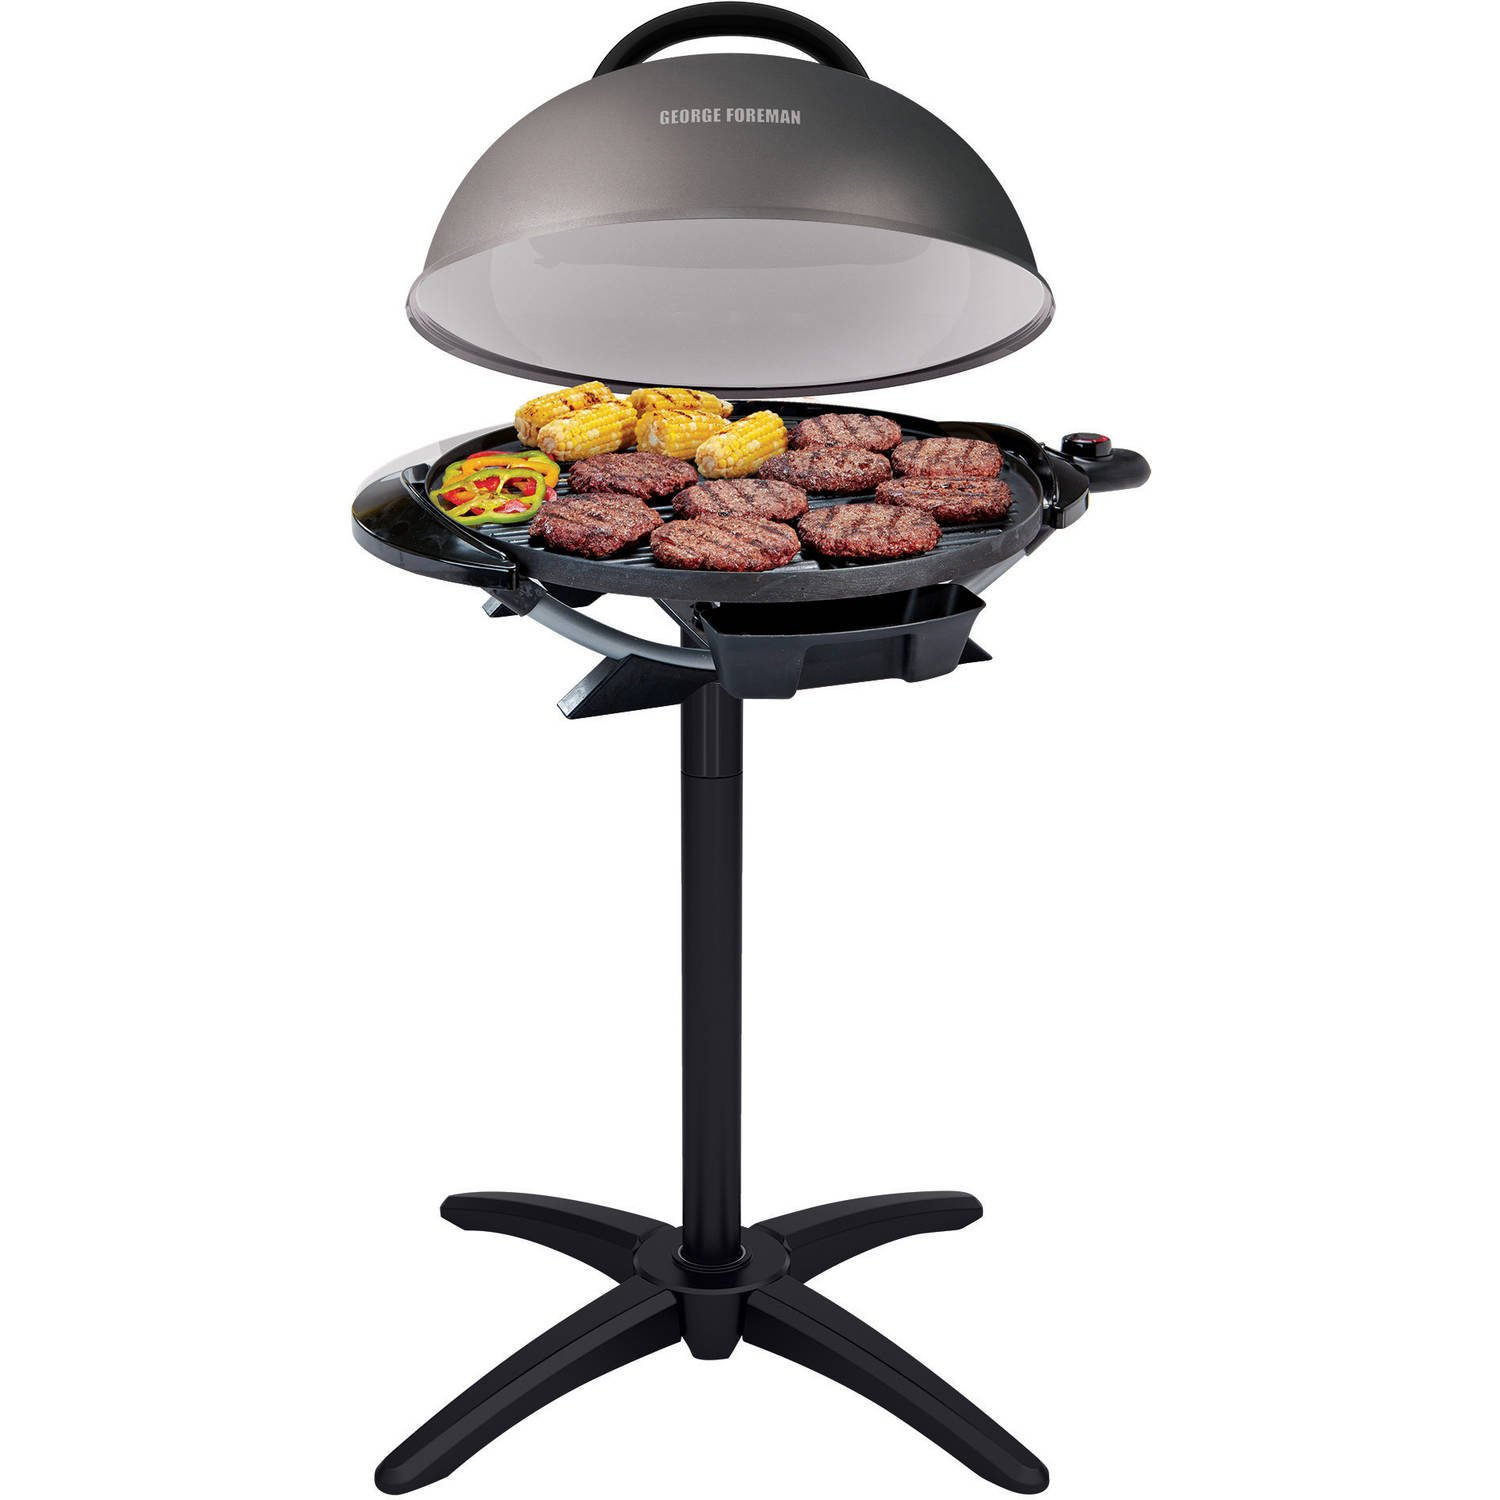 George Foreman 240'' Nonstick Removable Stand Indoor/Outdoor Electric Grill by George Foreman